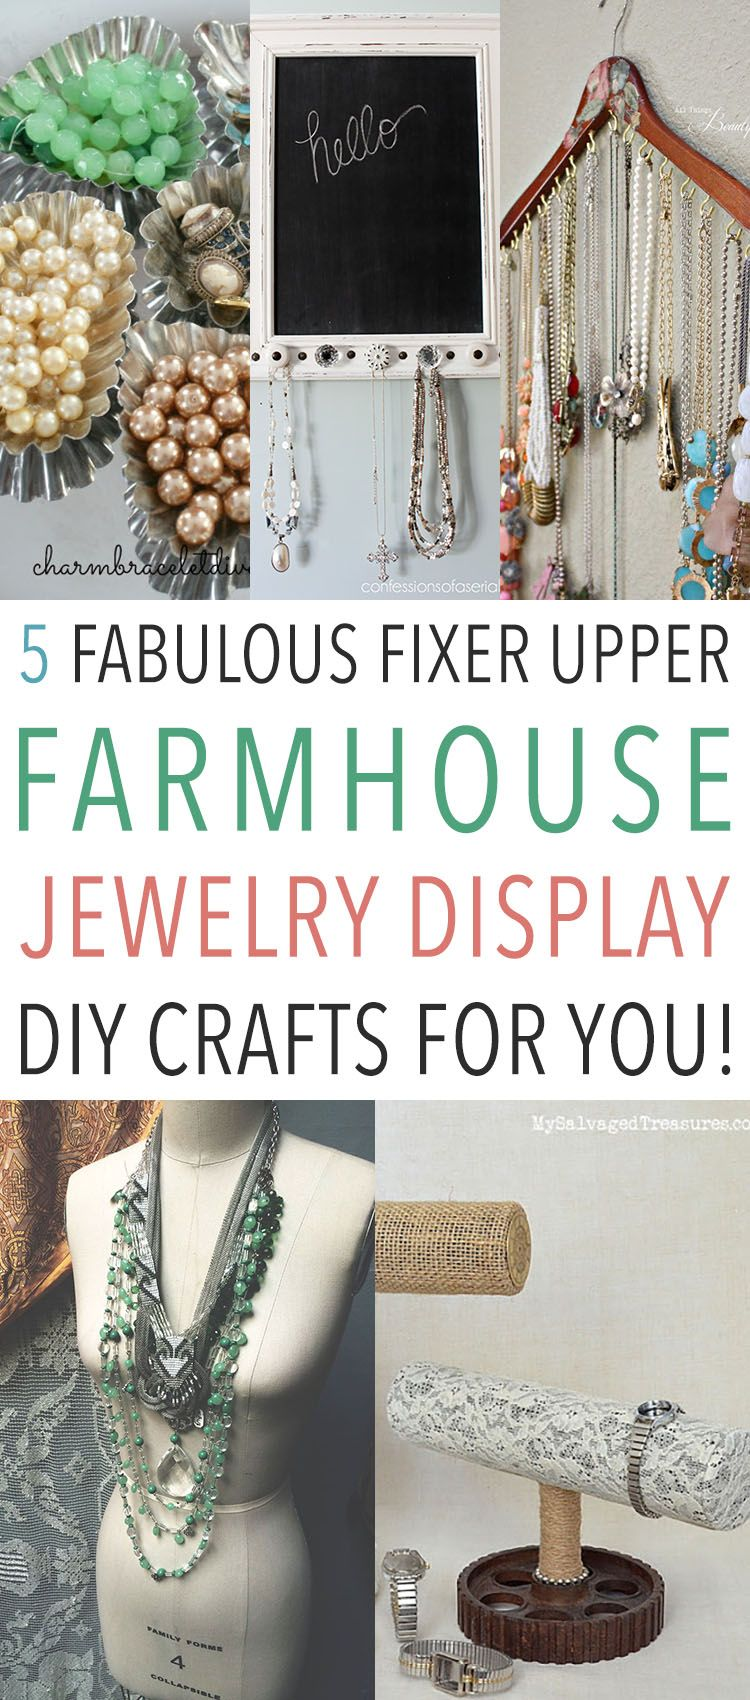 5 Fabulous Fixer-Upper Farmhouse Jewelry Display DIY Crafts for You! - The Cottage Market